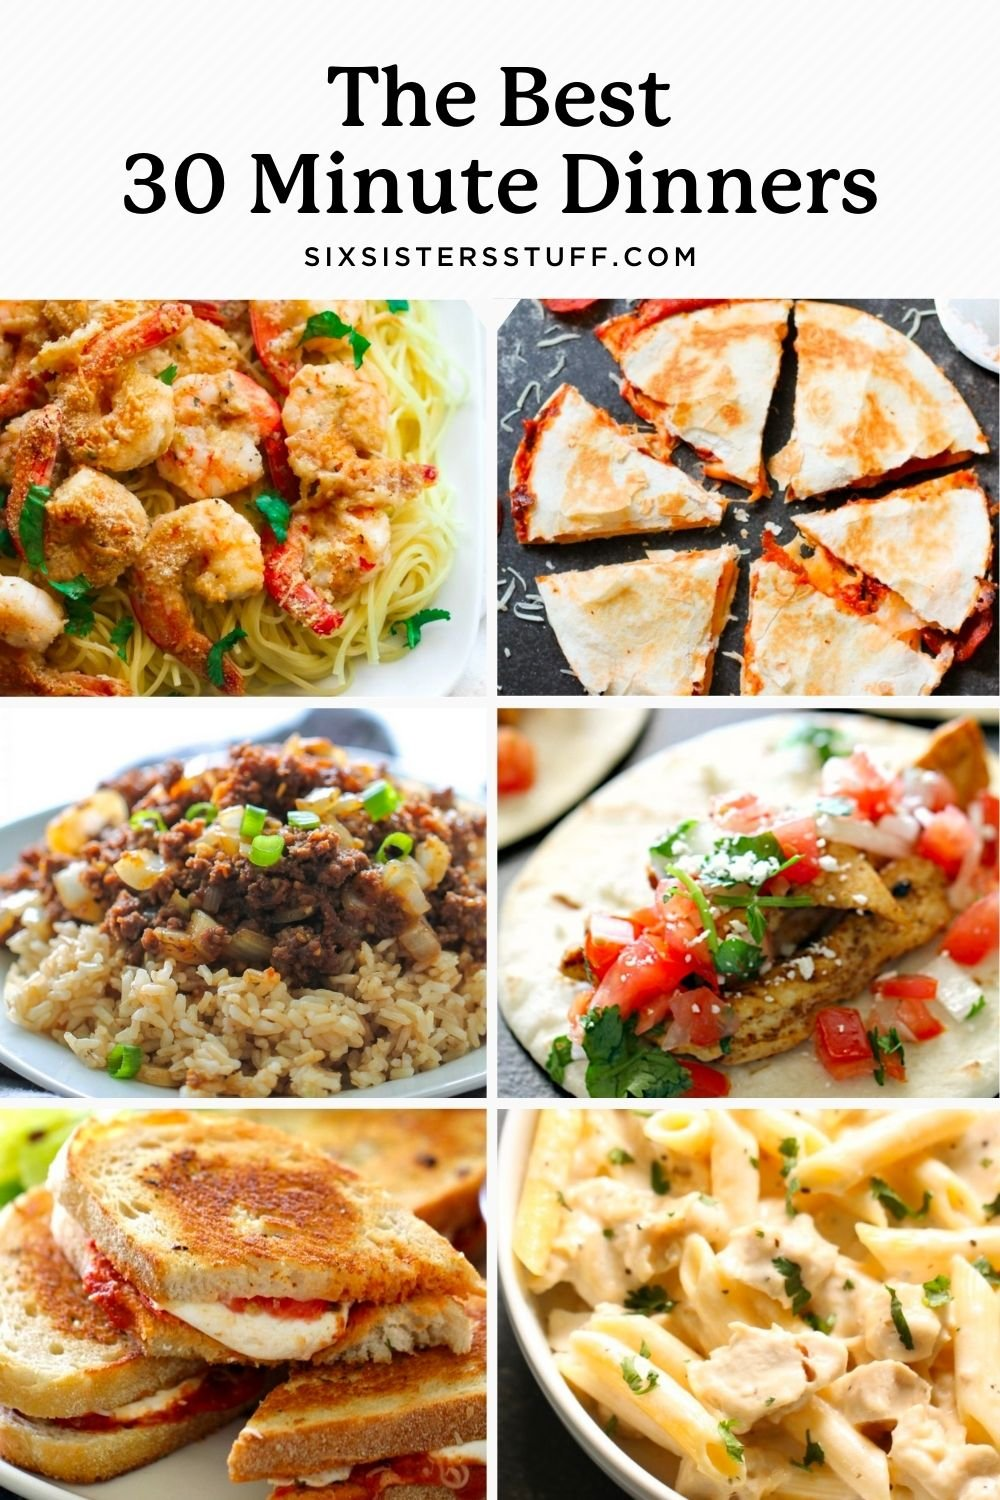 25 of the Best 30 Minute Family Dinner Recipes